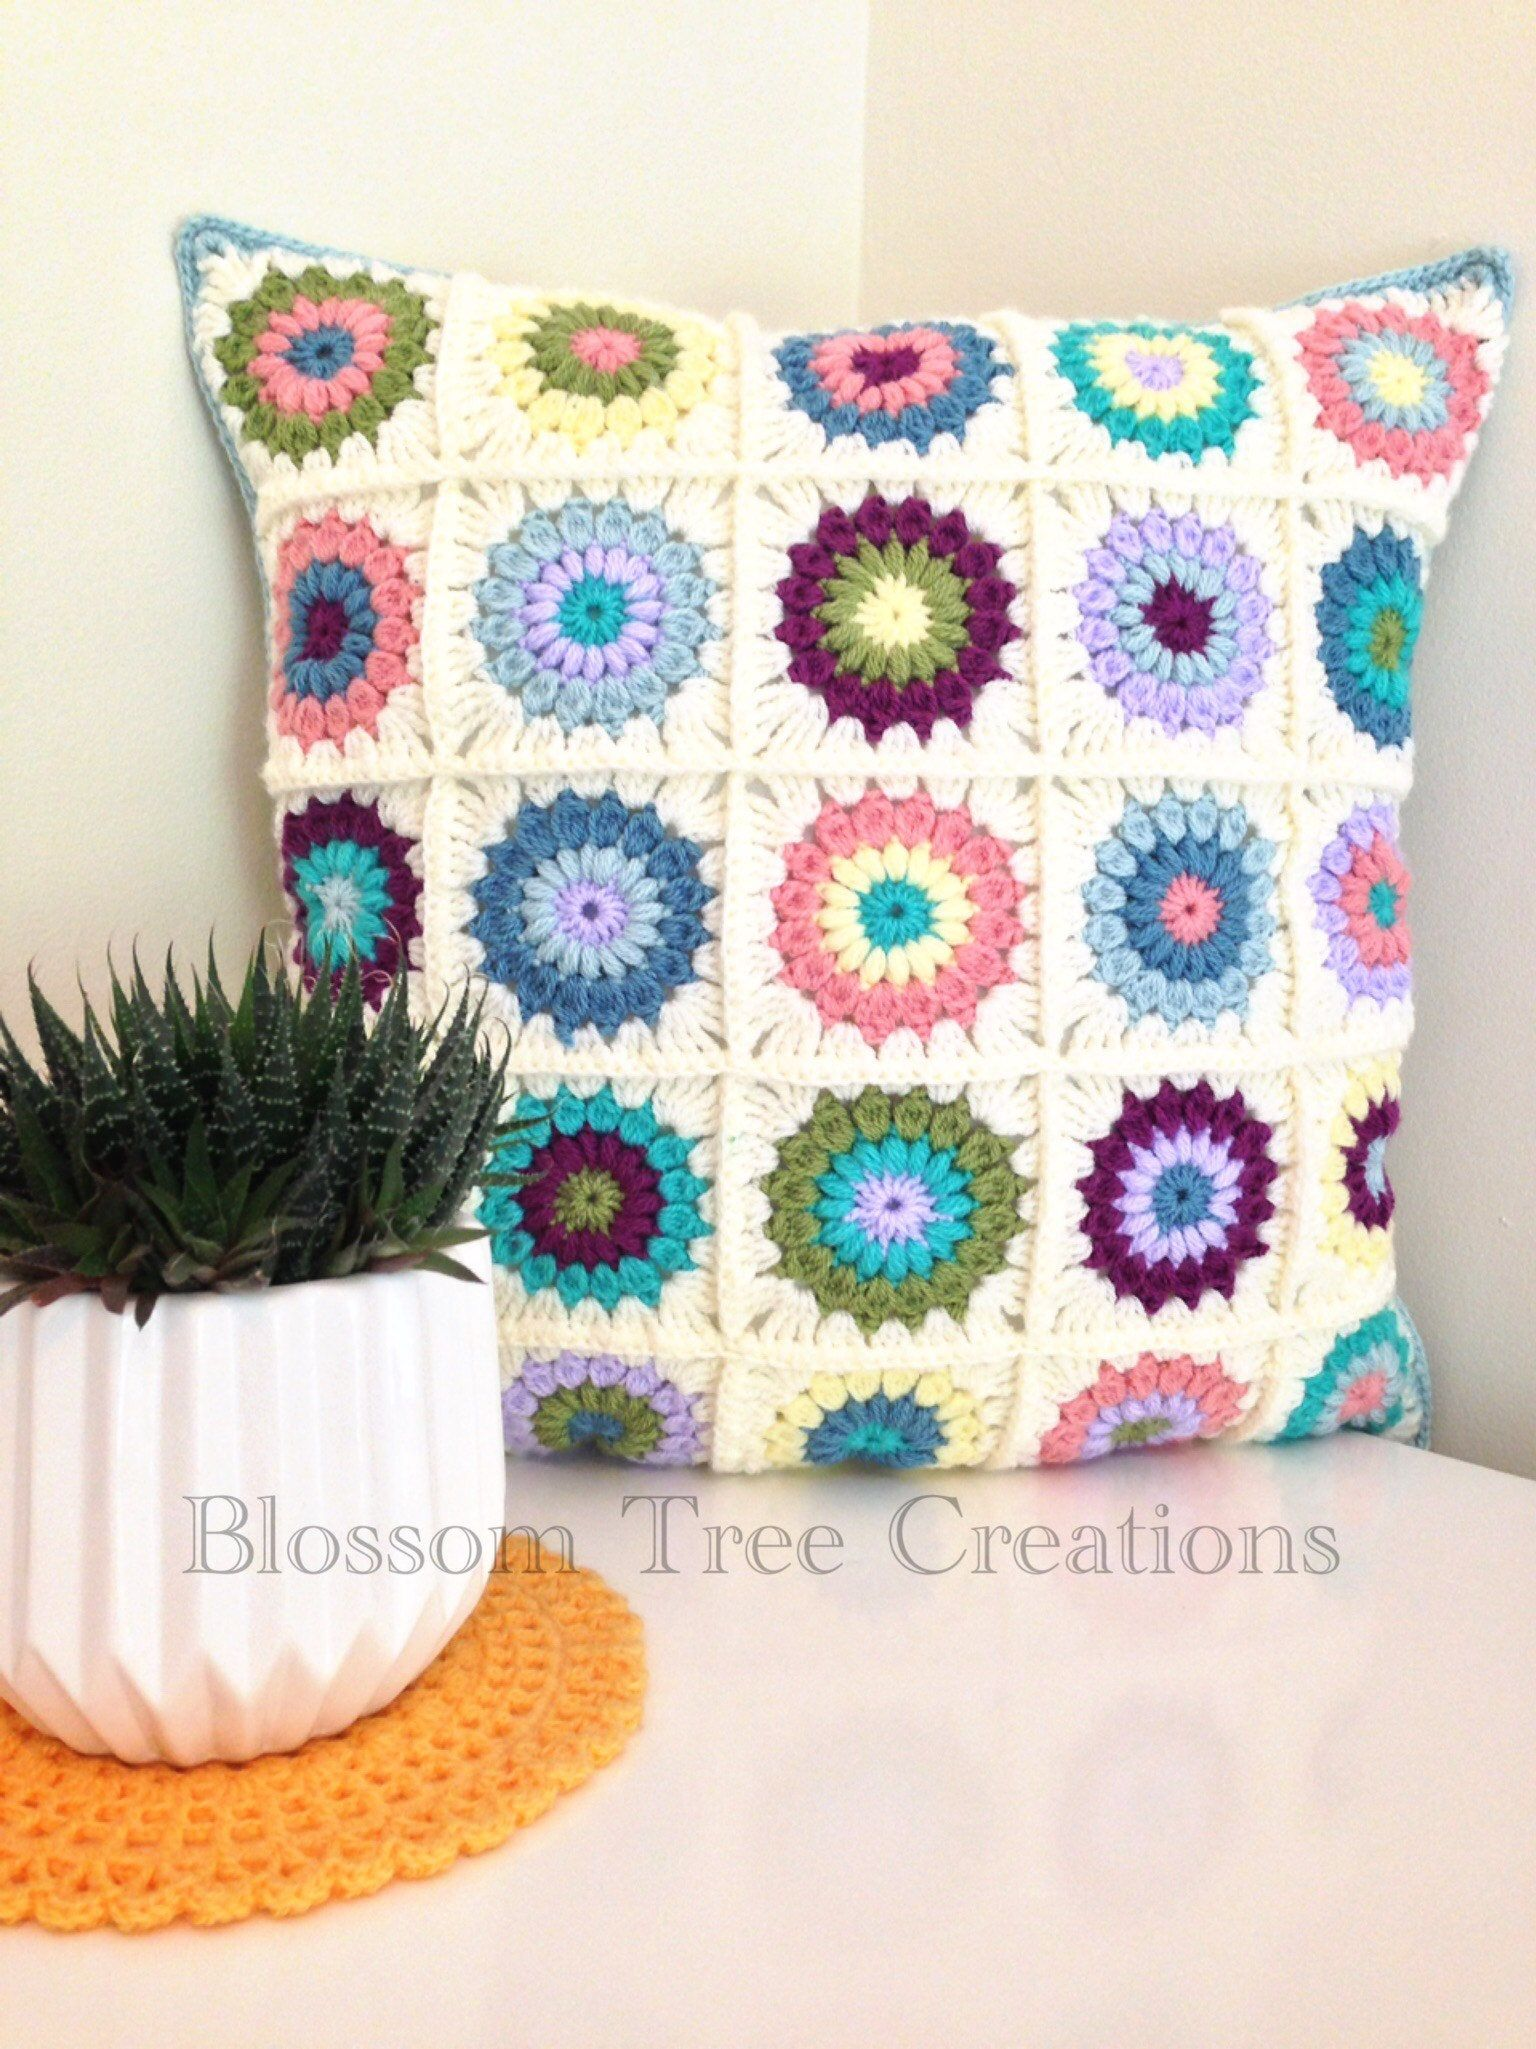 Made to order sunburst granny square crochet cushion cushions